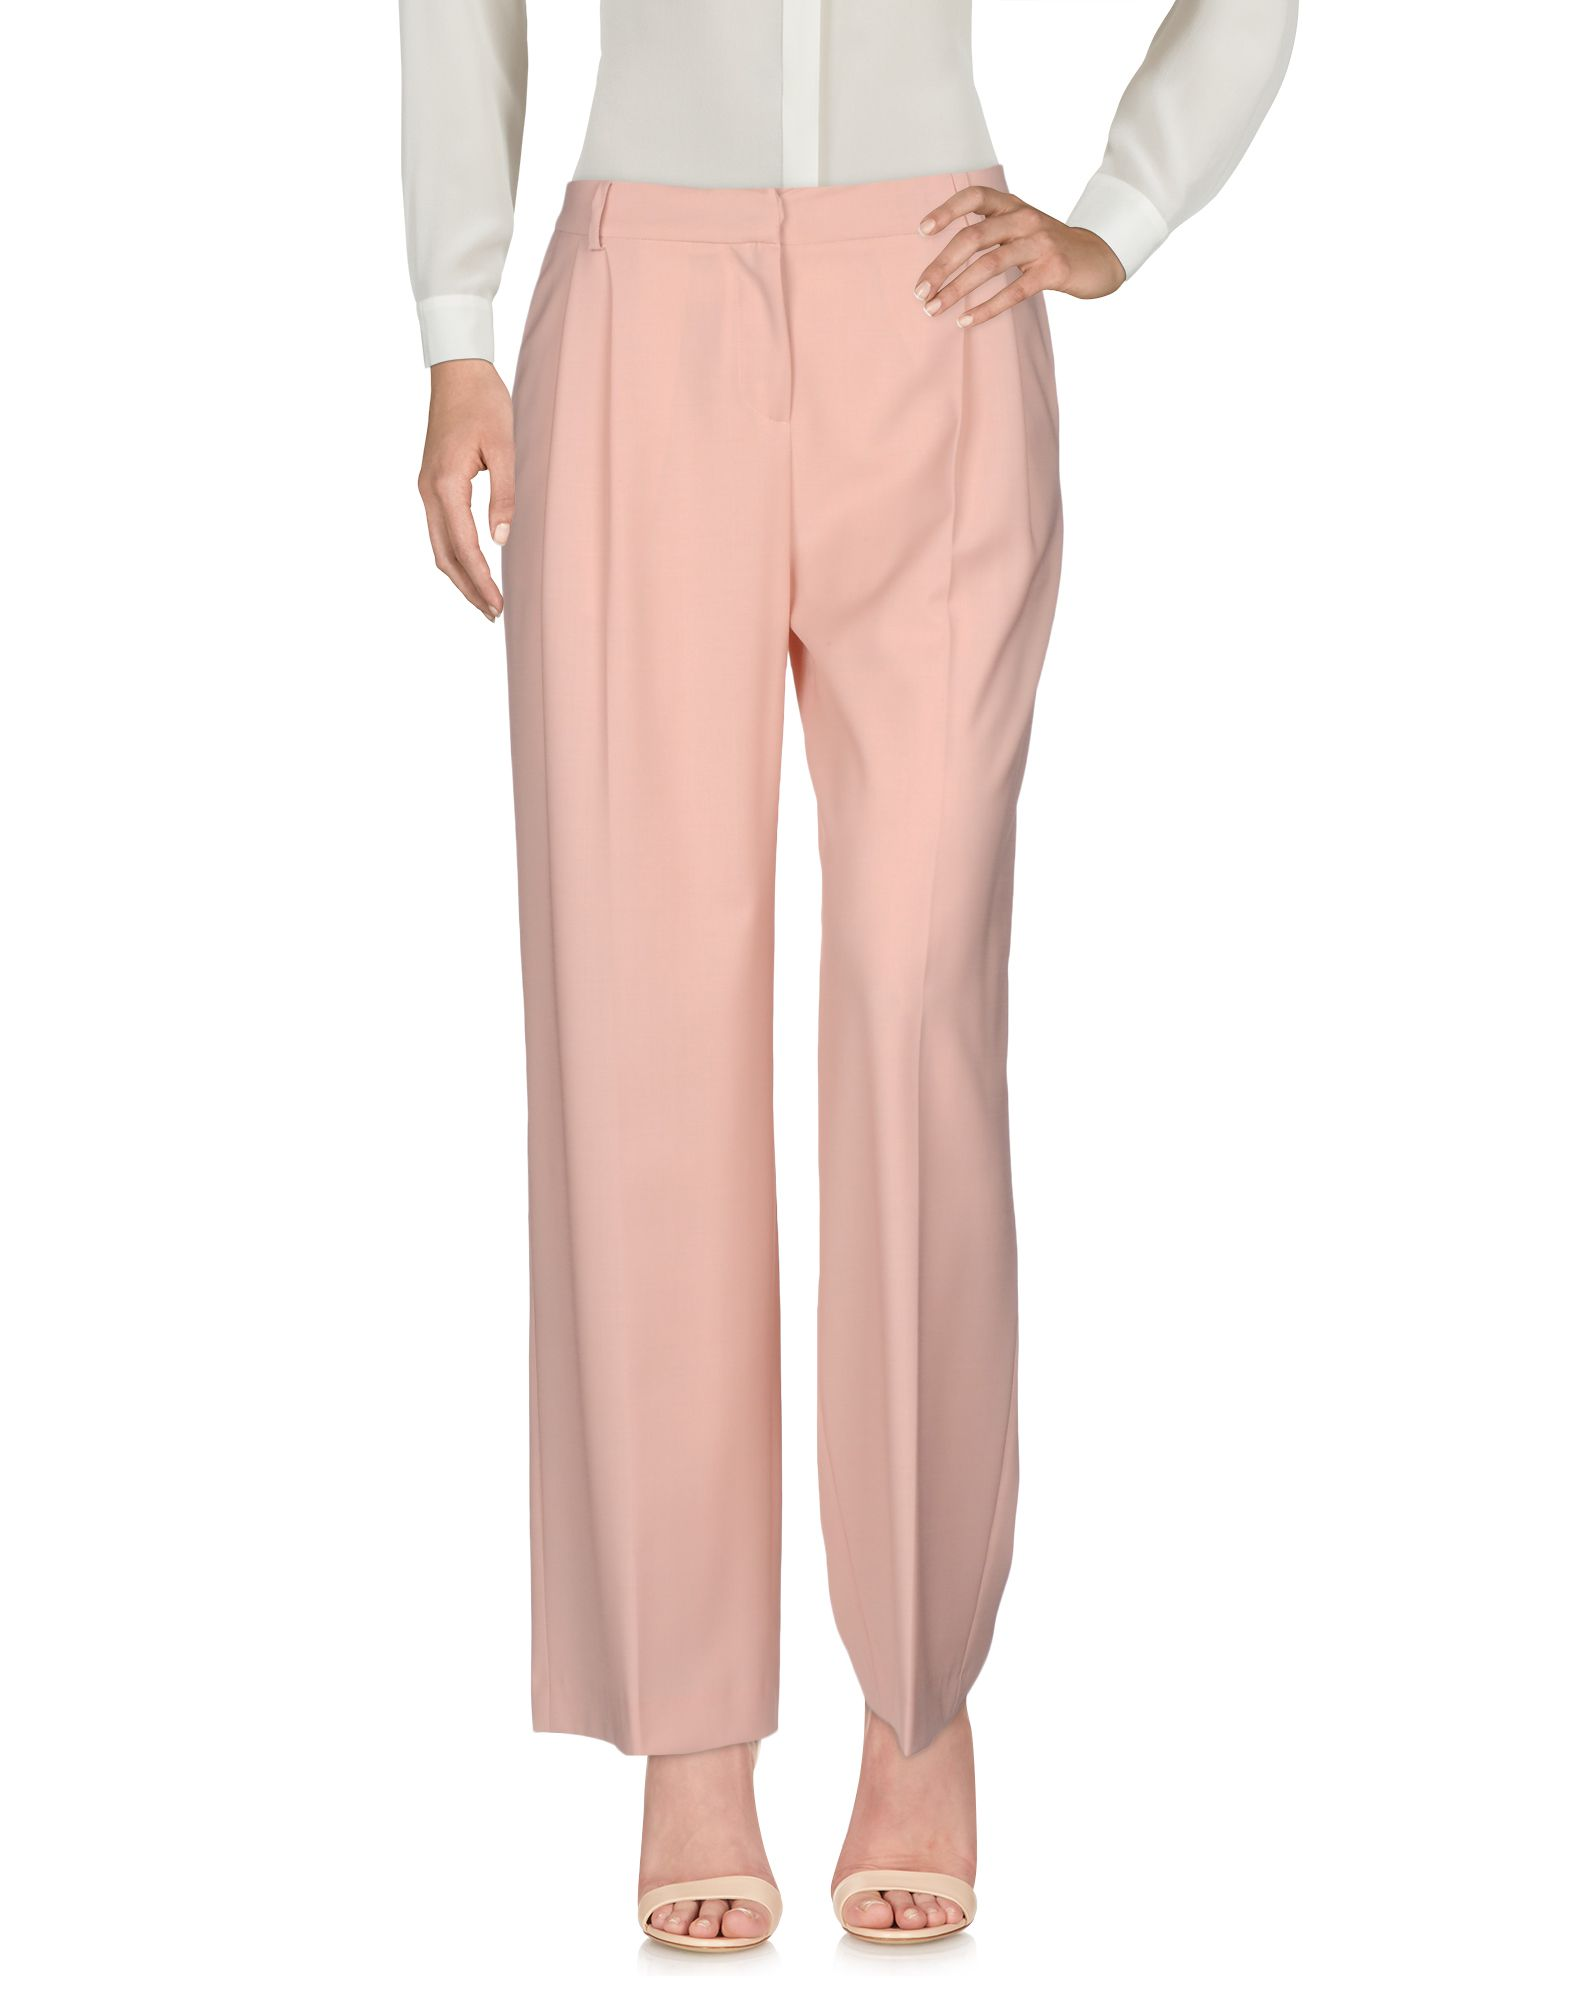 ALESSANDRO DELL'ACQUA Casual Pants in Pink